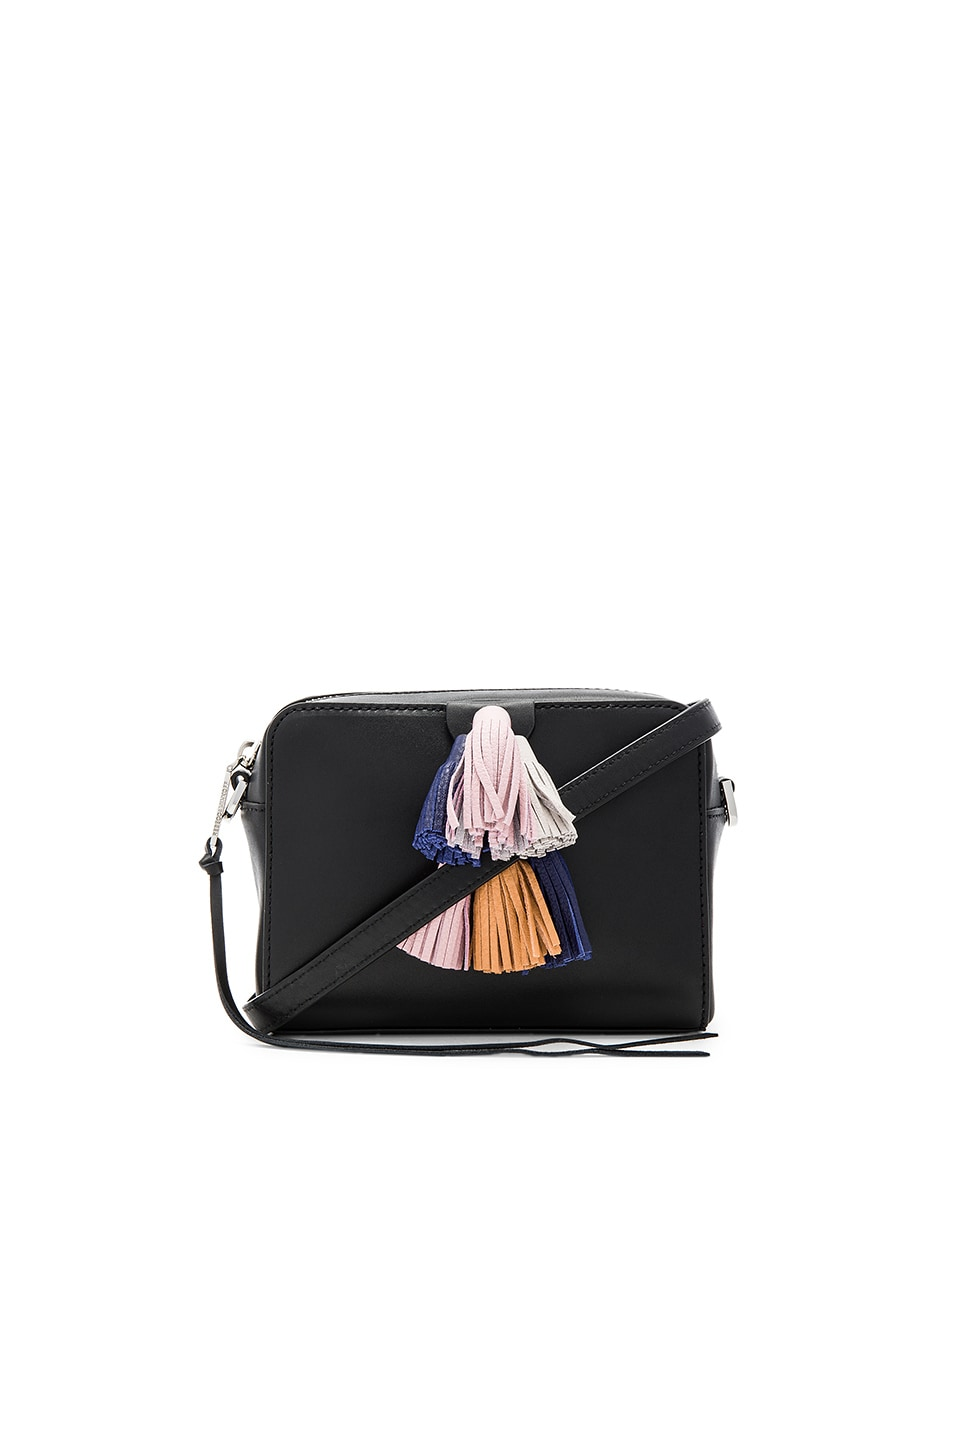 Rebecca Minkoff Mini Sofia Crossbody in Multi Black